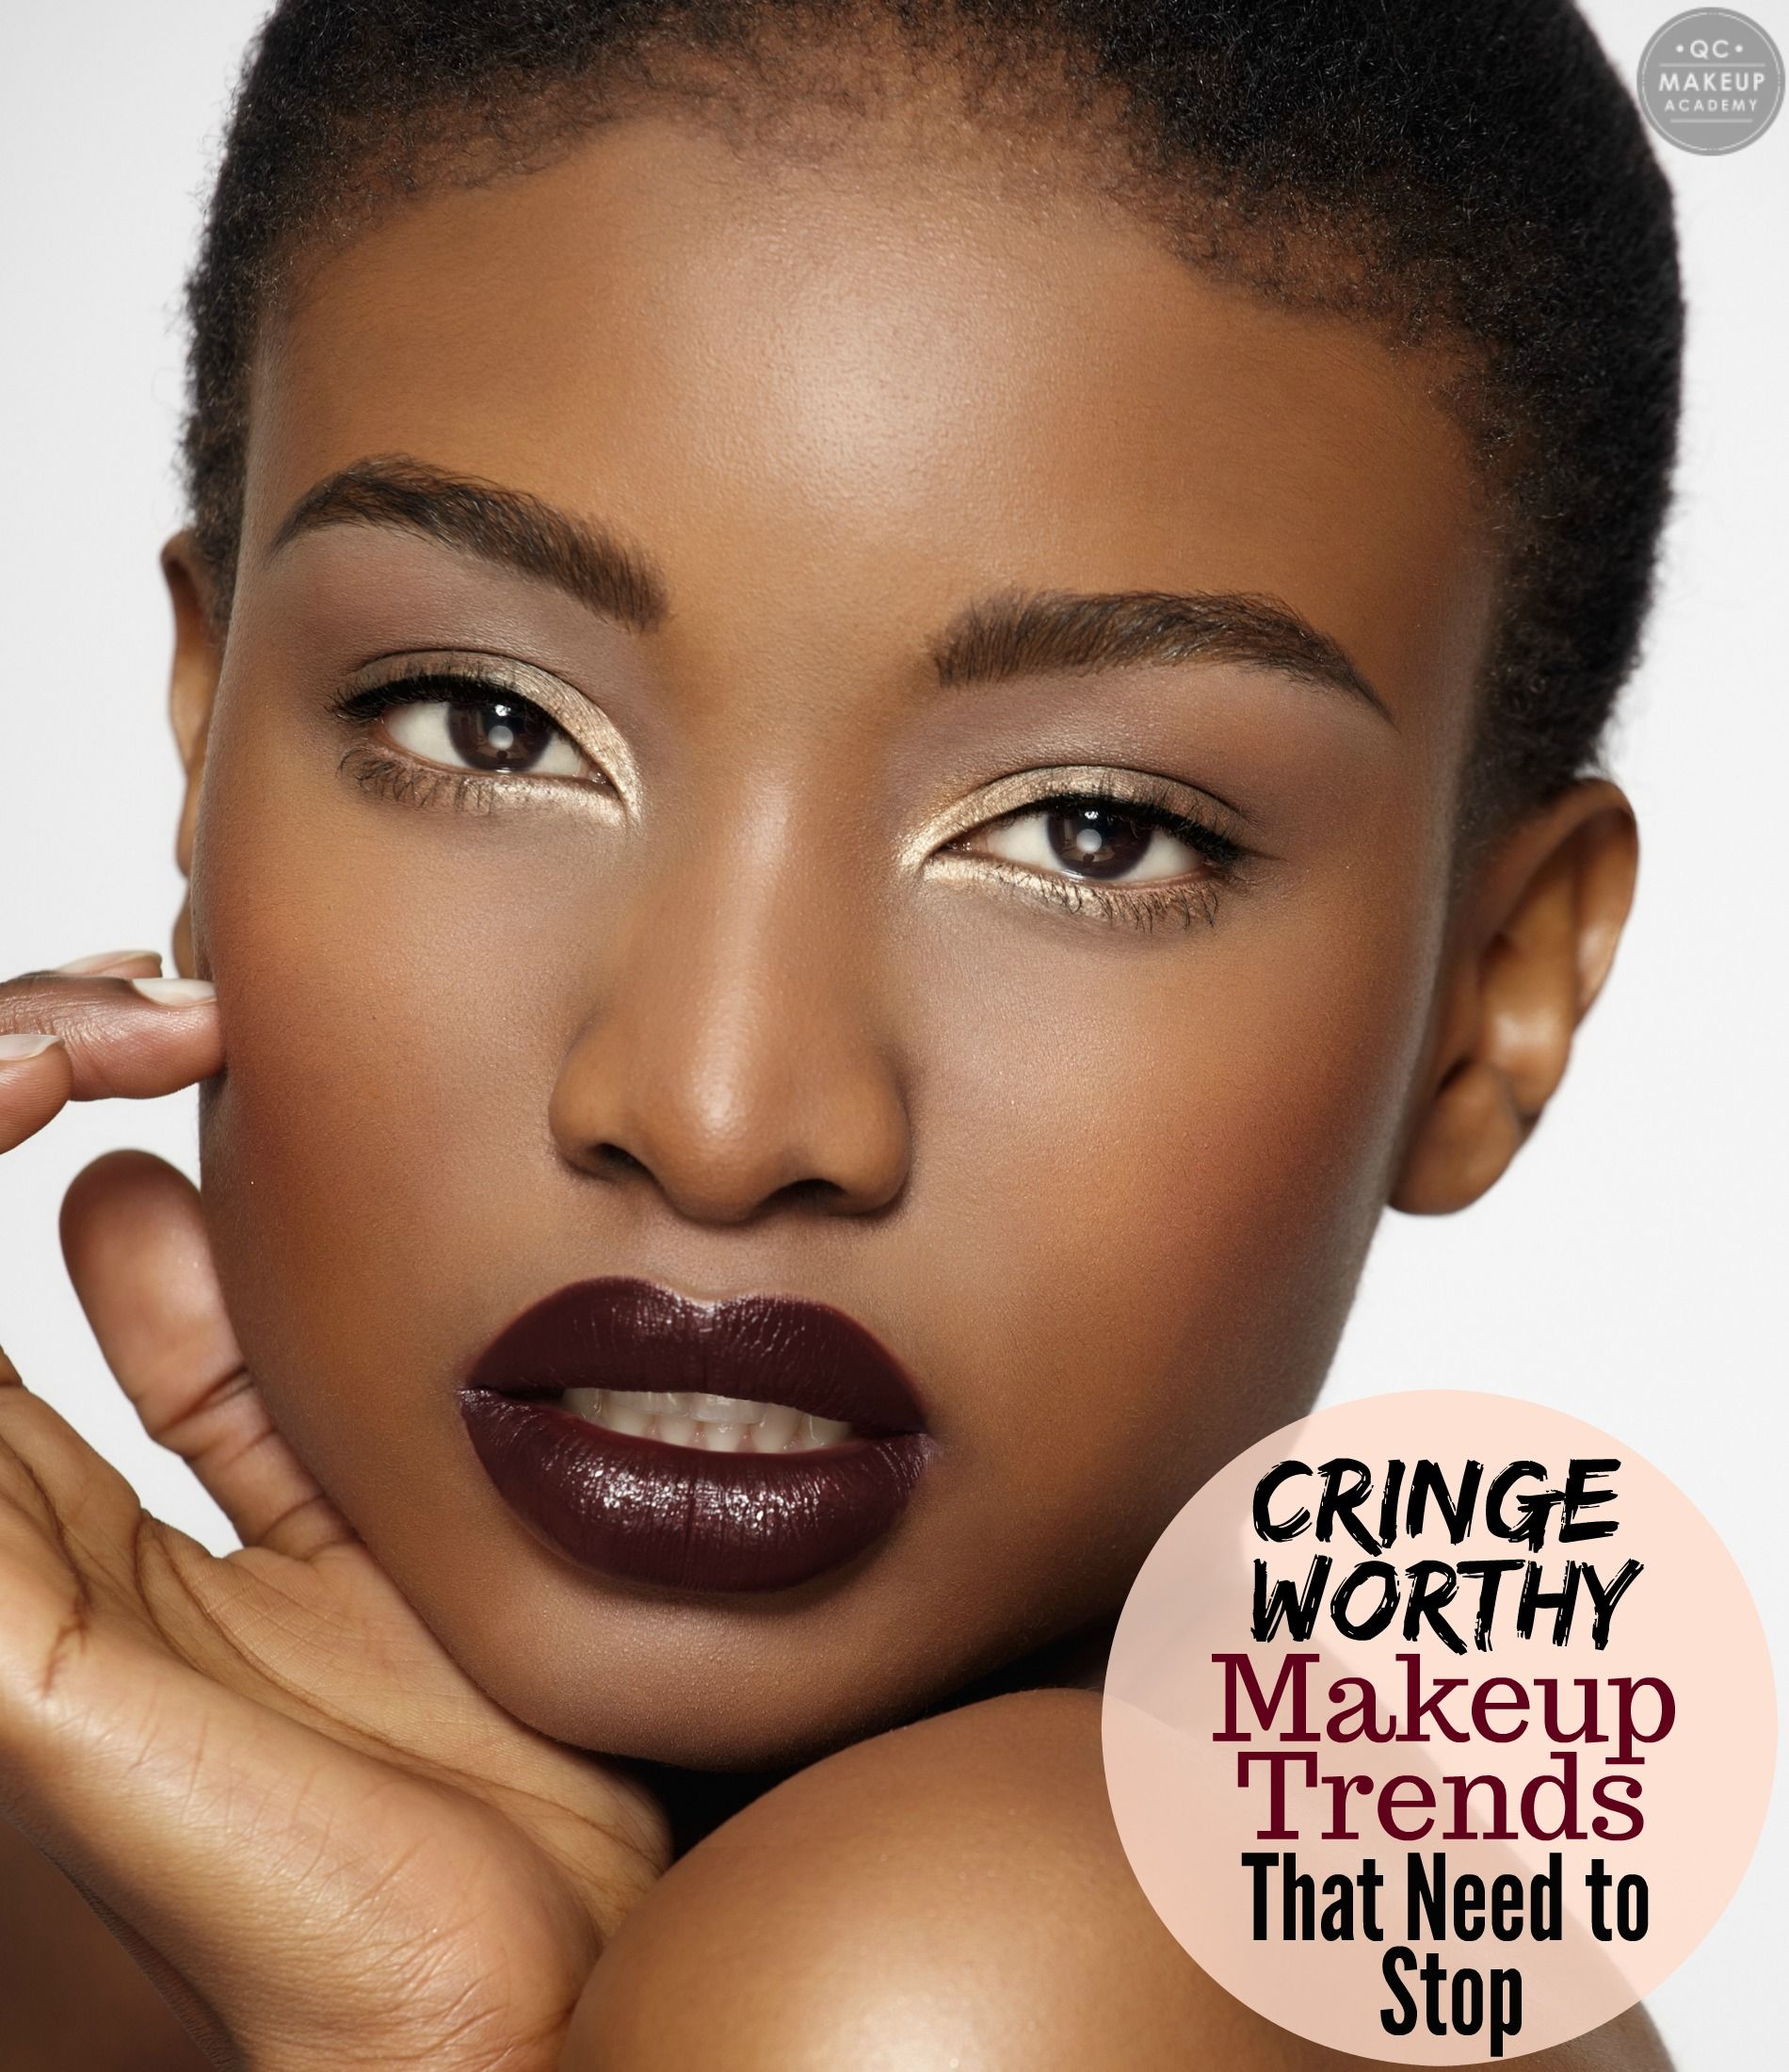 Cringe Worthy Makeup Techniques That Need to Stop Makeup